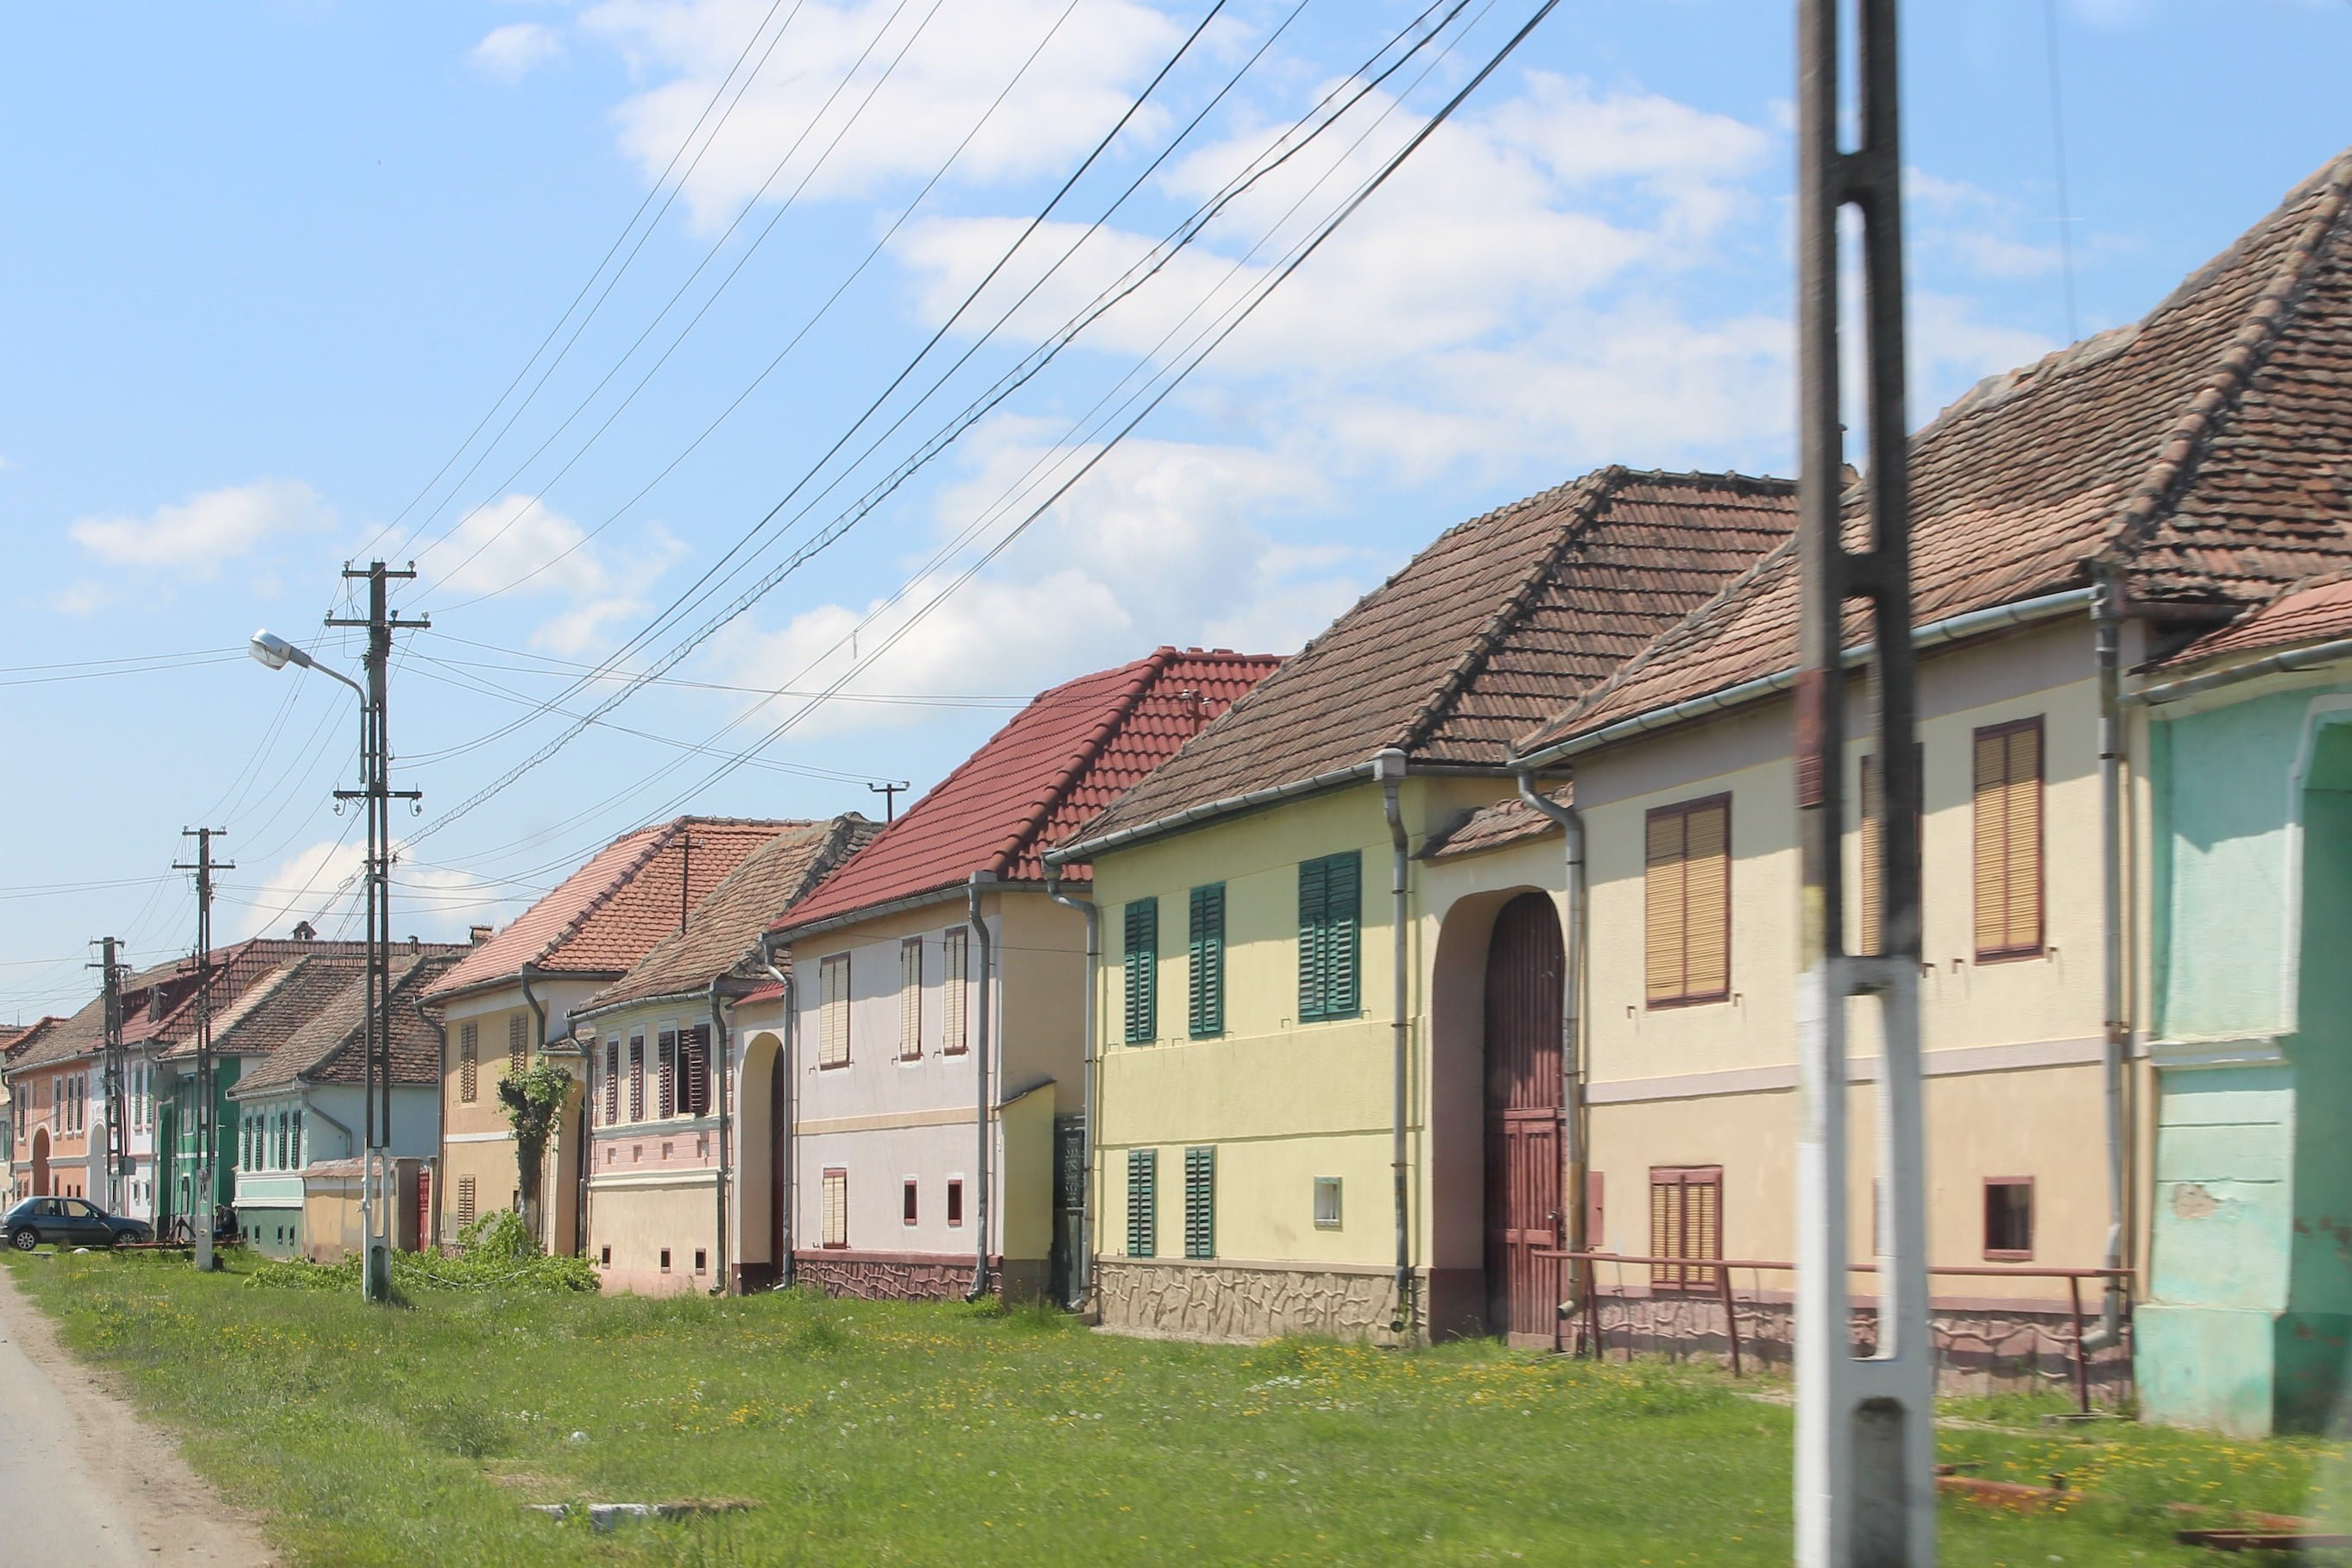 Colourful housing was common in small towns in Transylvania